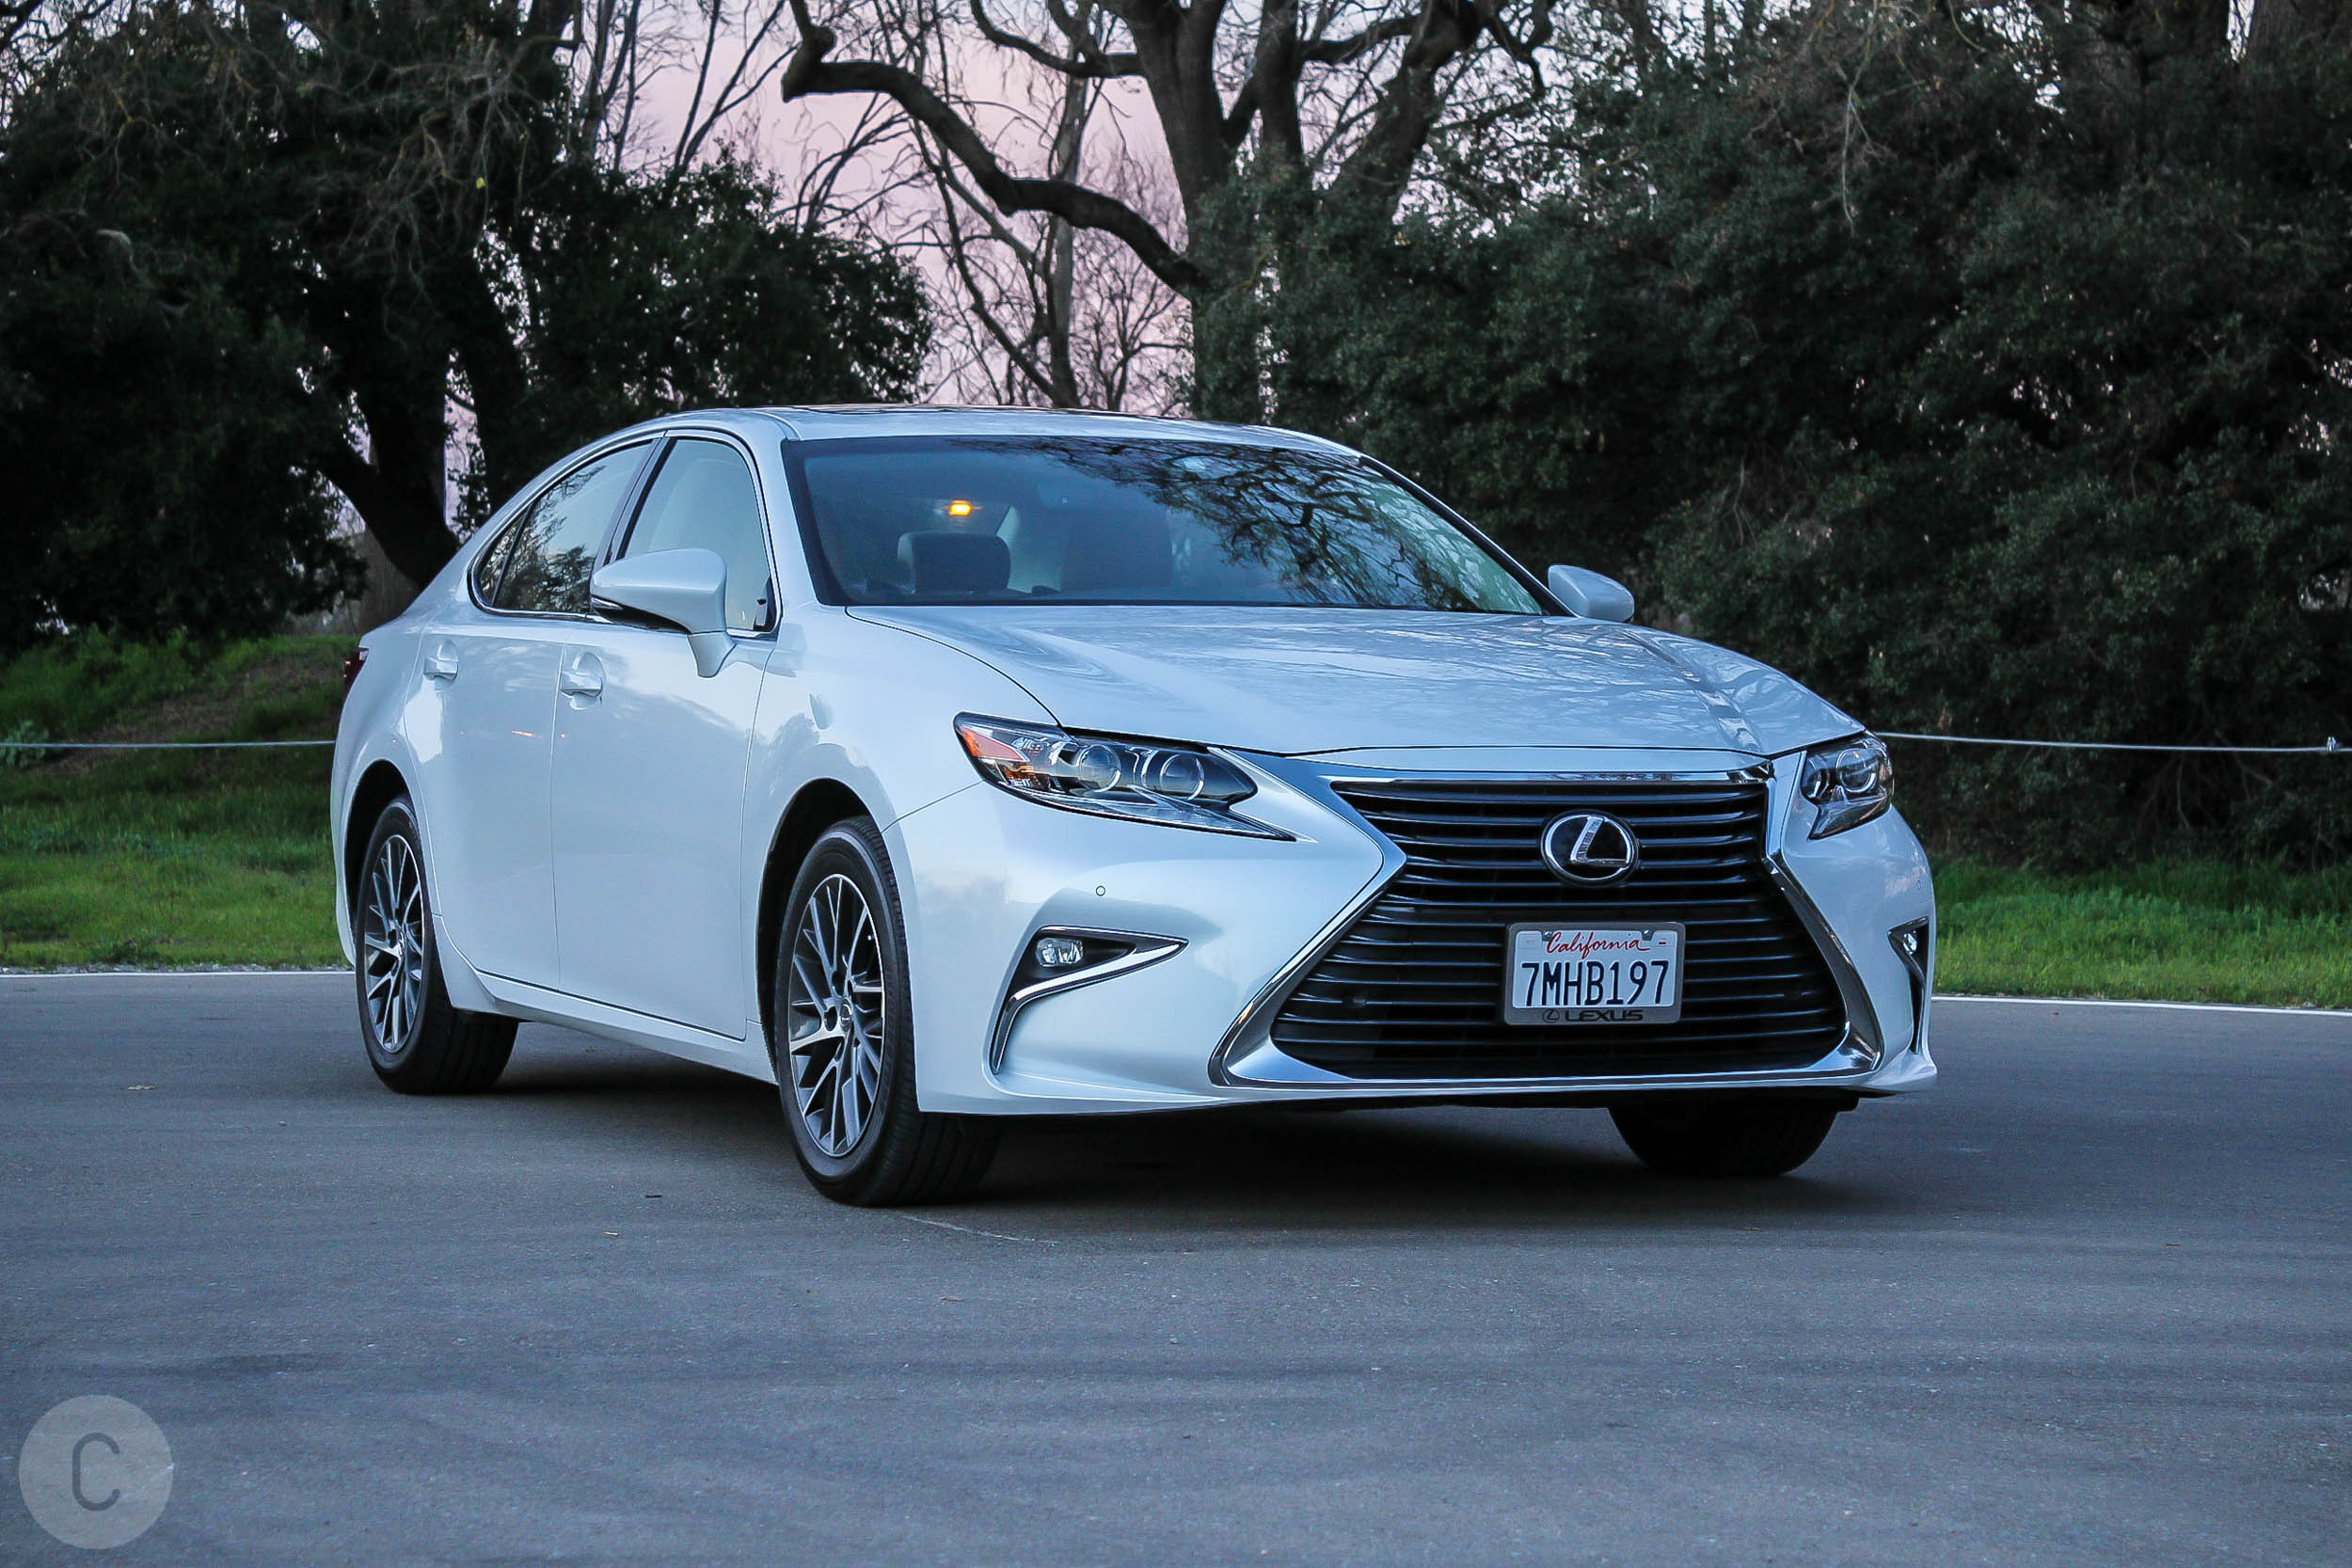 2016 Lexus ES 350 • Carfanatics Blog